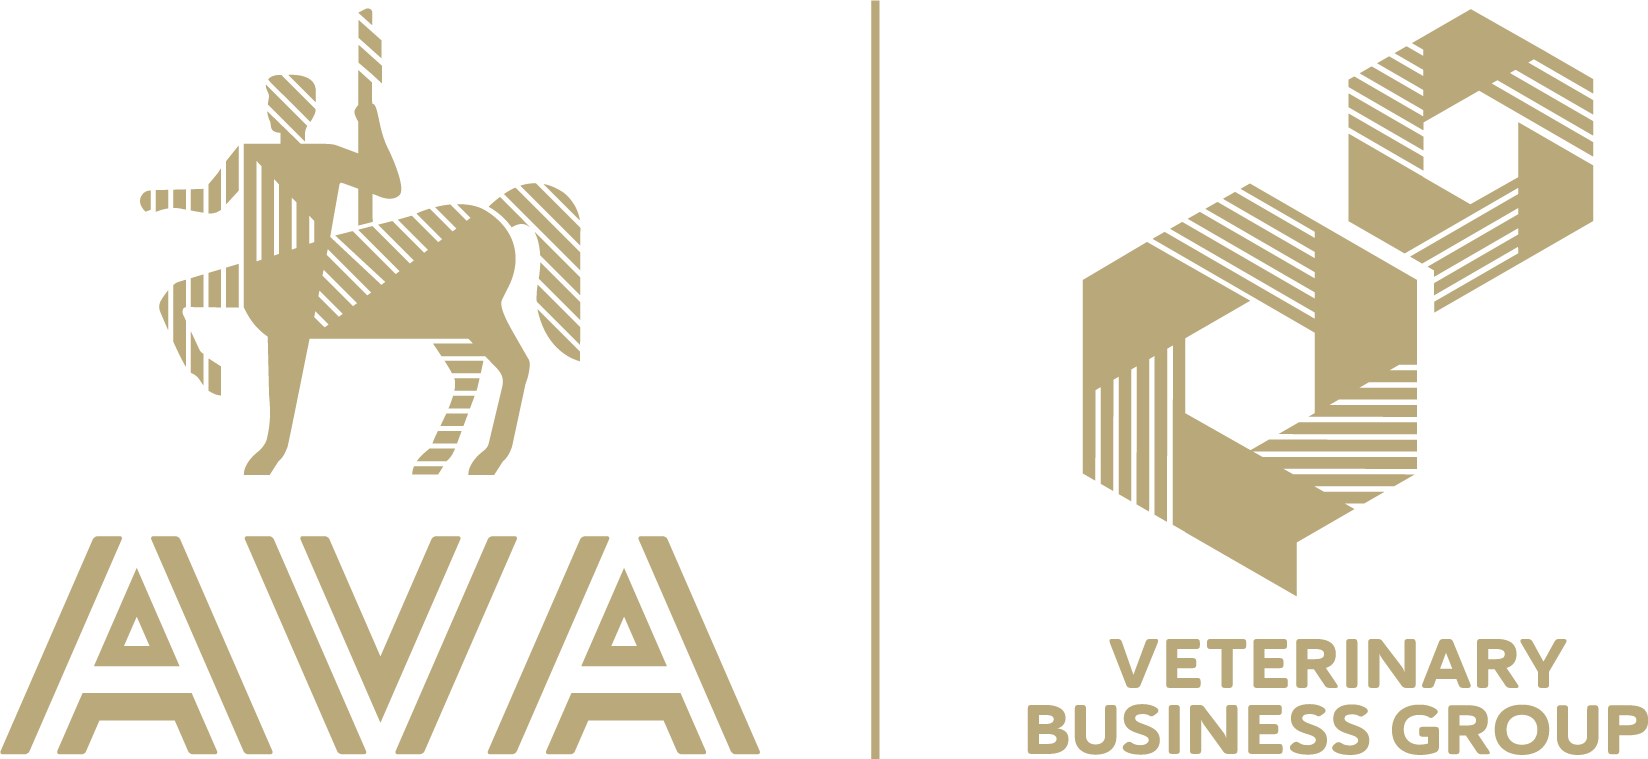 Veterinary Business Group